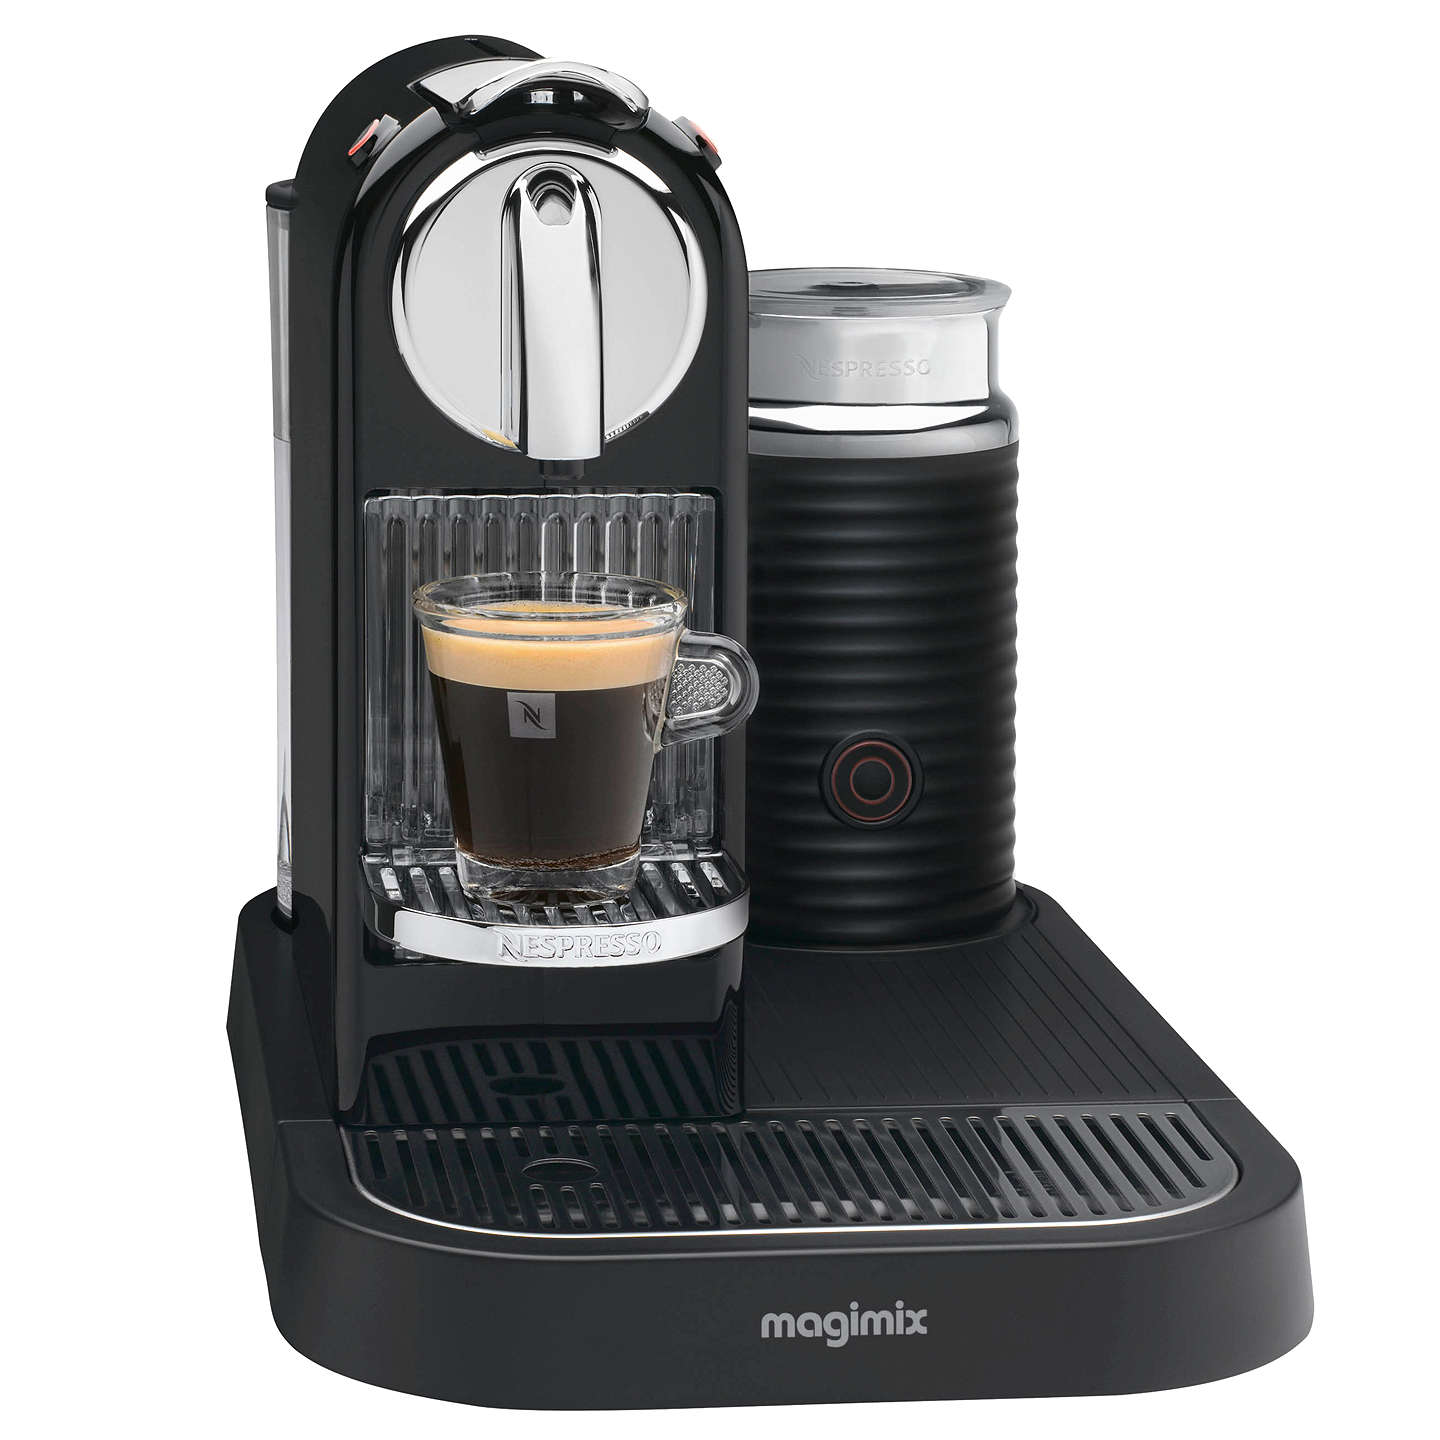 nespresso m190 citiz and milk coffee machine by magimix black at john lewis. Black Bedroom Furniture Sets. Home Design Ideas